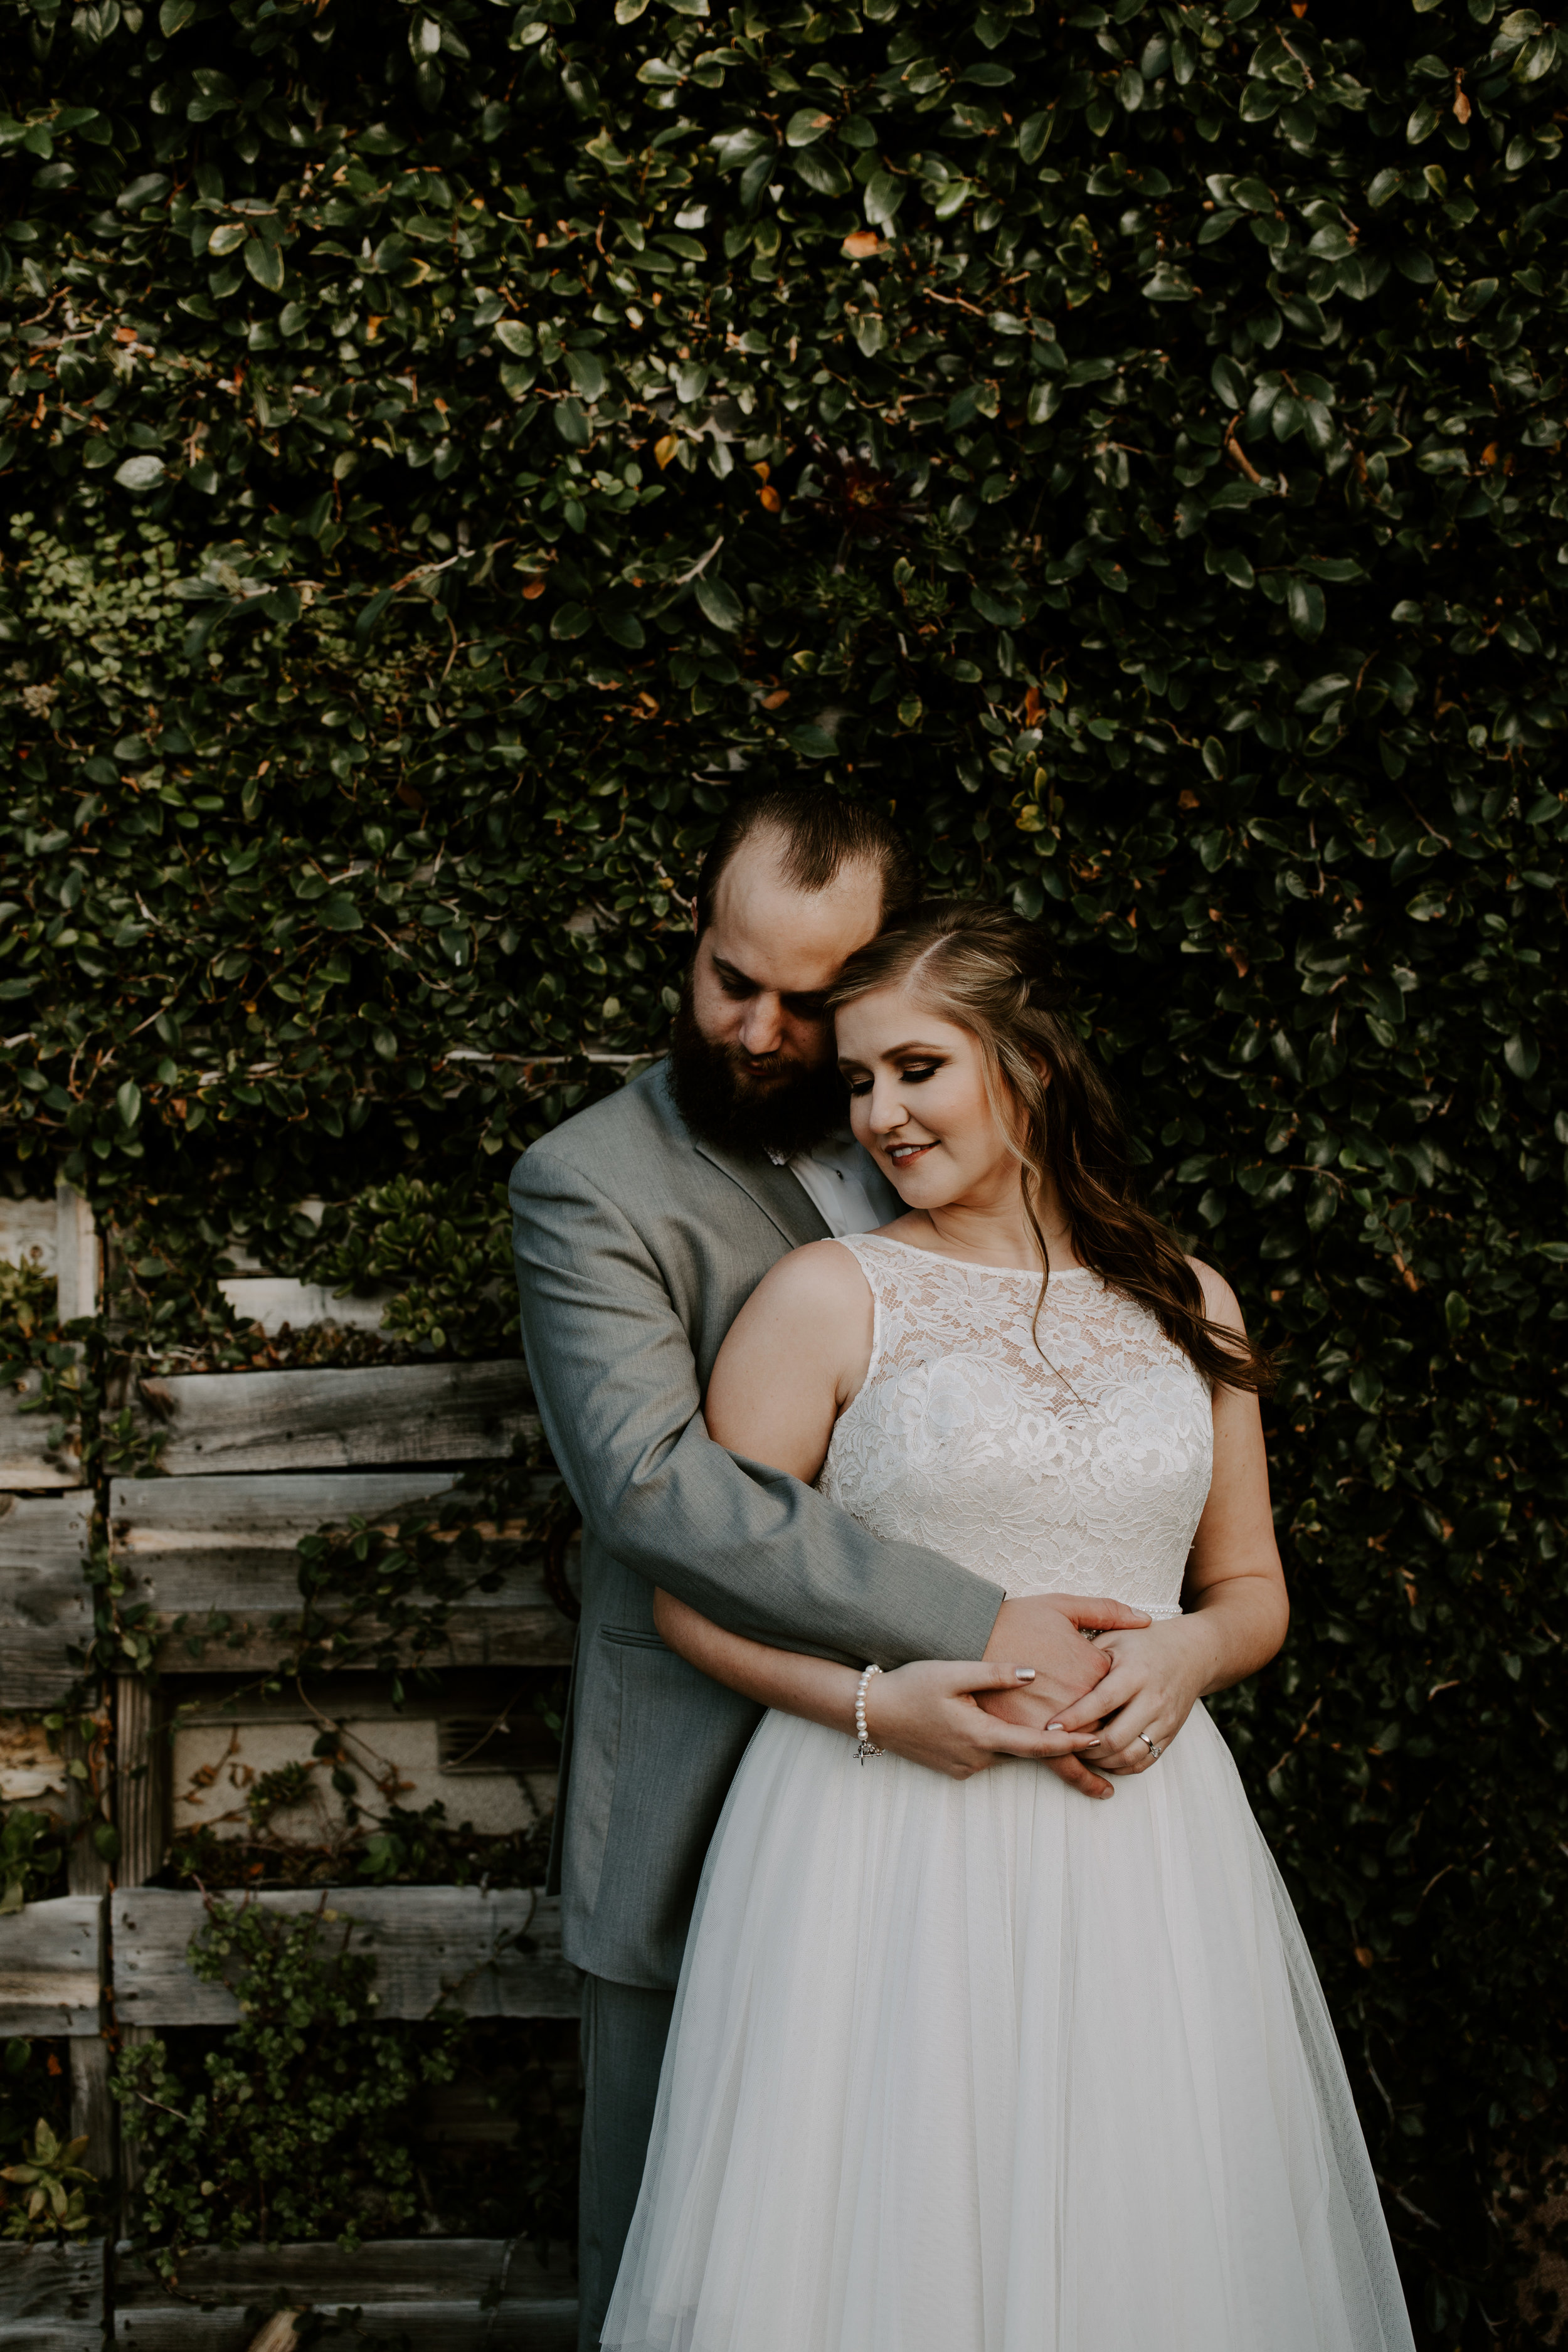 Smoky Hollow Studios Wedding Anne & Lewis Emily Magers Photography-464.jpg